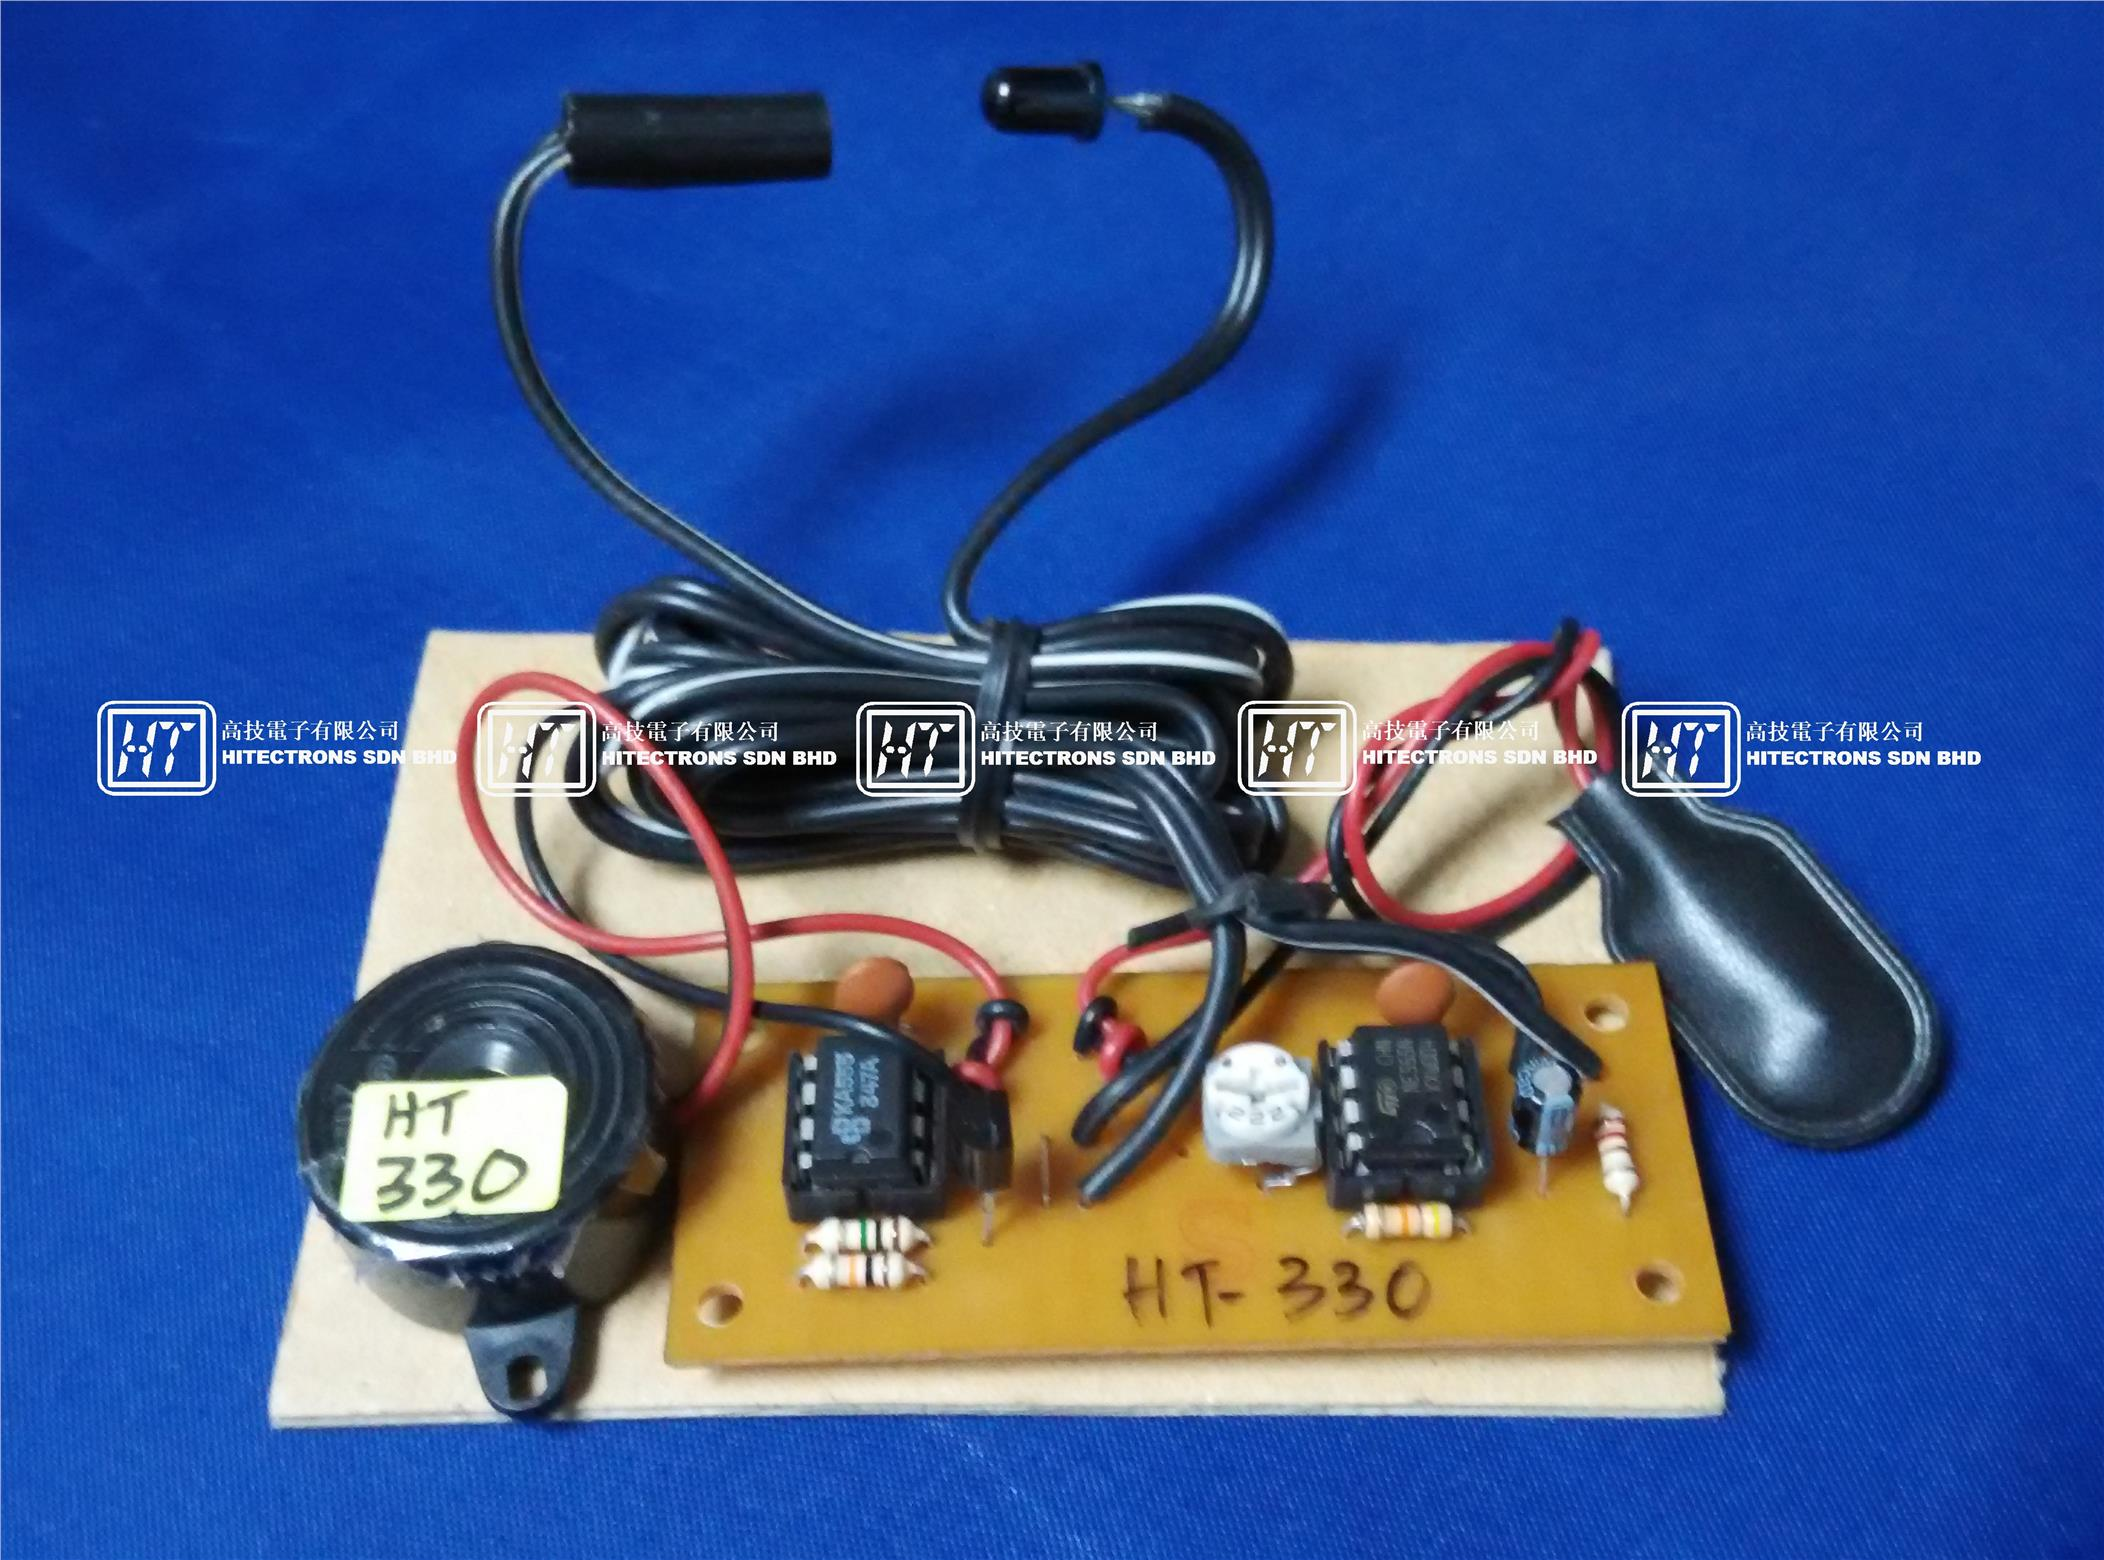 HT330 Infrared Beam Detector  / Electronics Kit